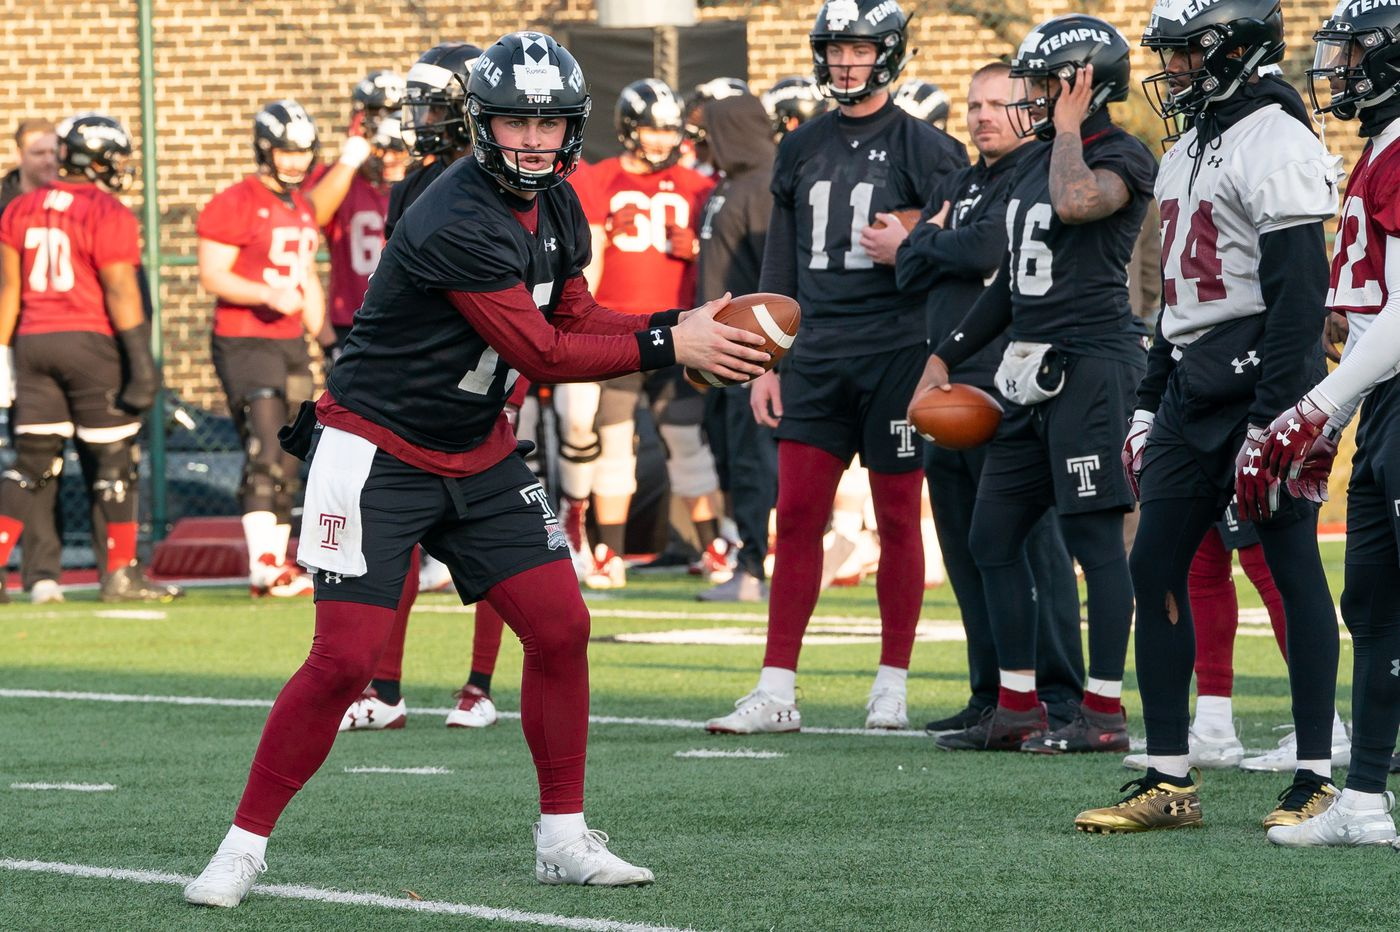 Looking to cut back on injuries, Temple football won't hold spring game